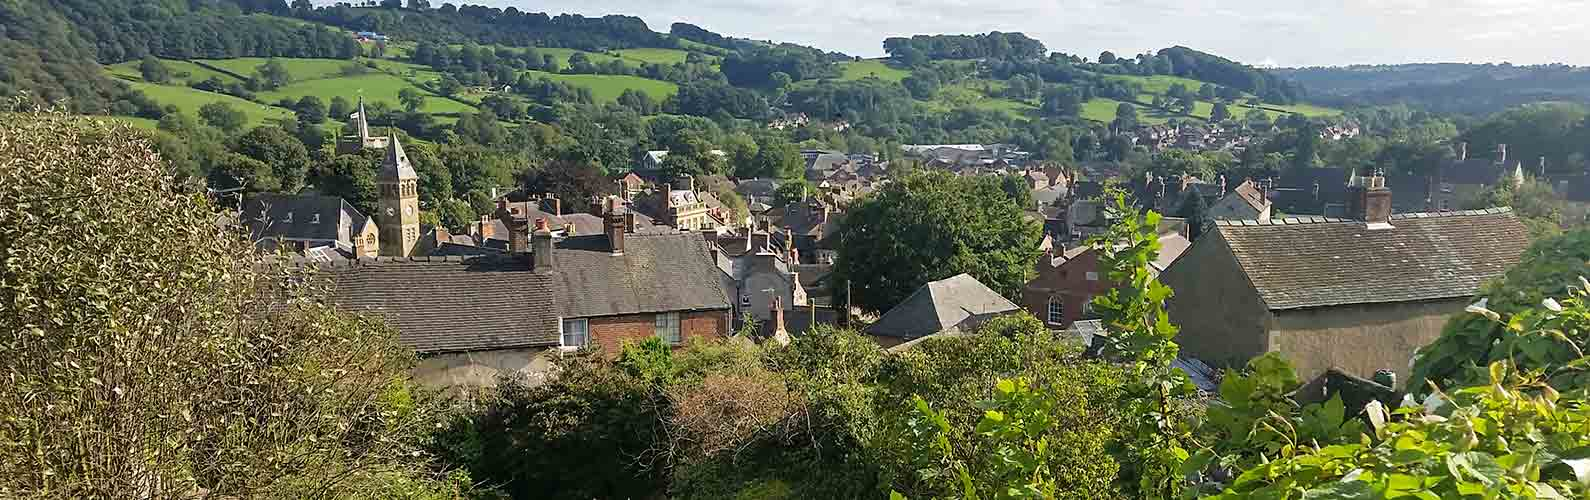 View across Wirksworth